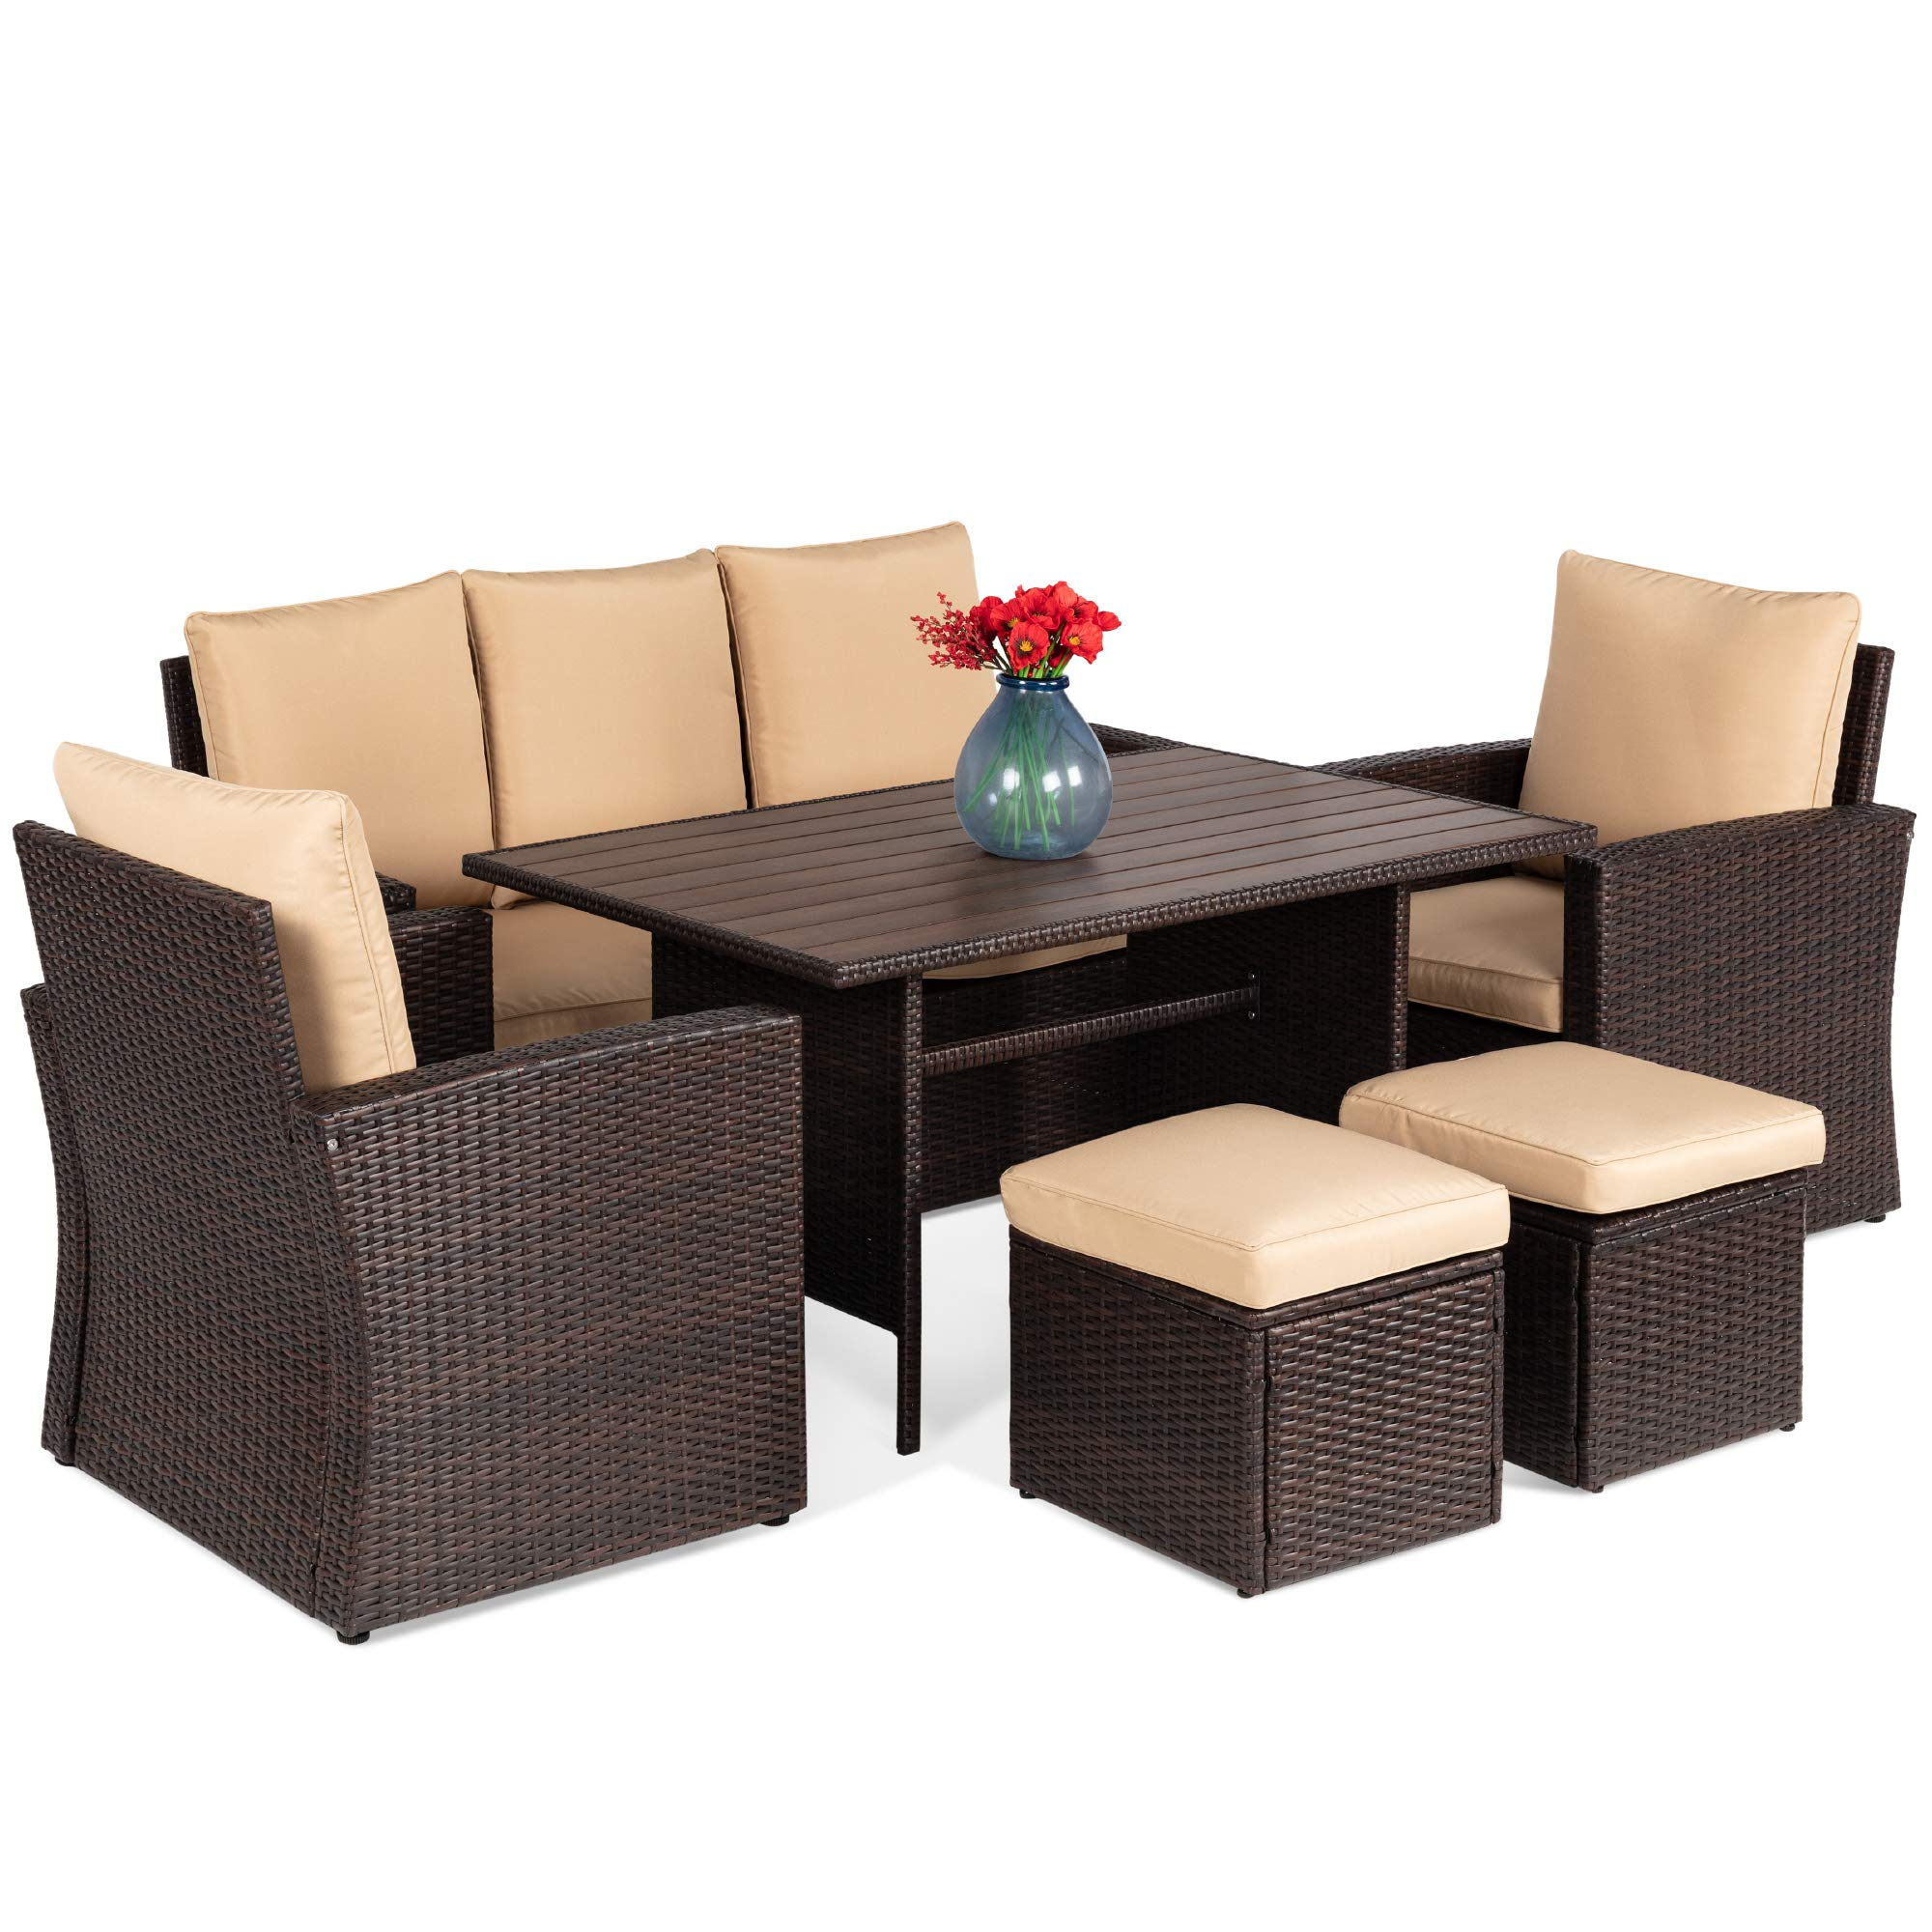 Best Choice Products 7-Seater Conversation Wicker Sofa Dining Table, Outdoor Patio Furniture Set w/Modular 6 Pieces, Cushi...